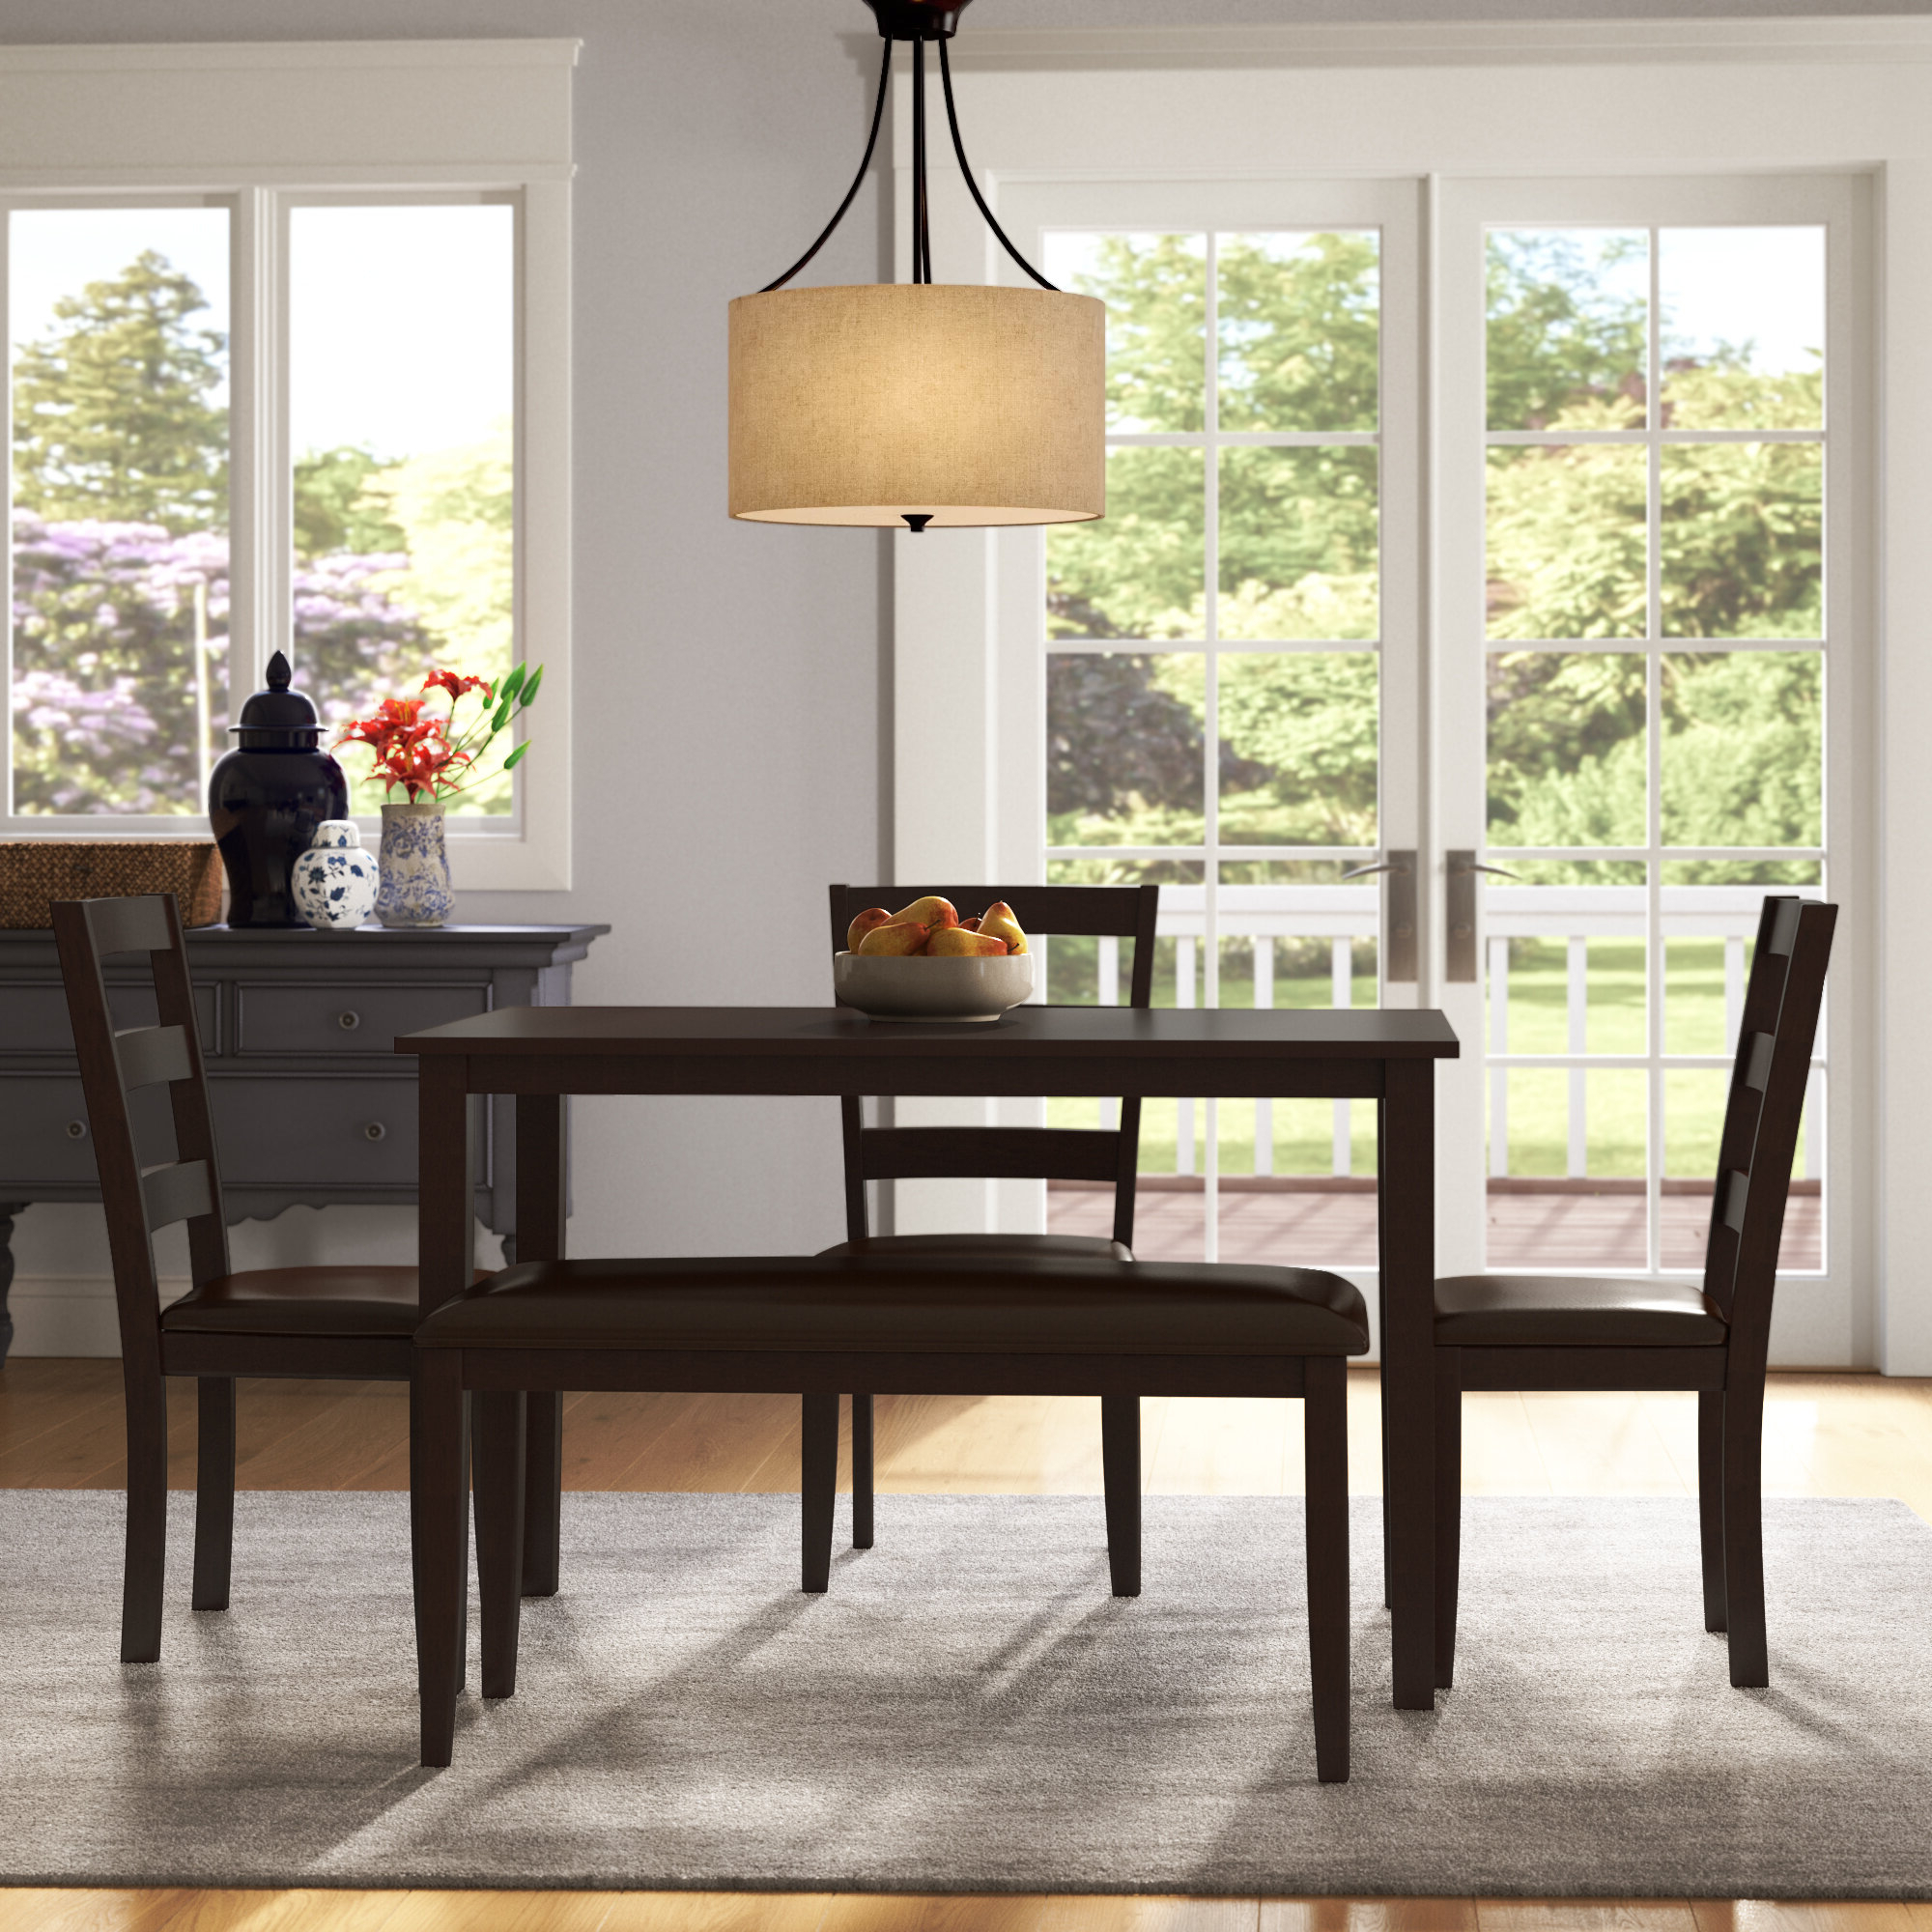 Famous Oak Brook 5 Piece Dinning Set Intended For Castellanos Modern 5 Piece Counter Height Dining Sets (Gallery 9 of 20)